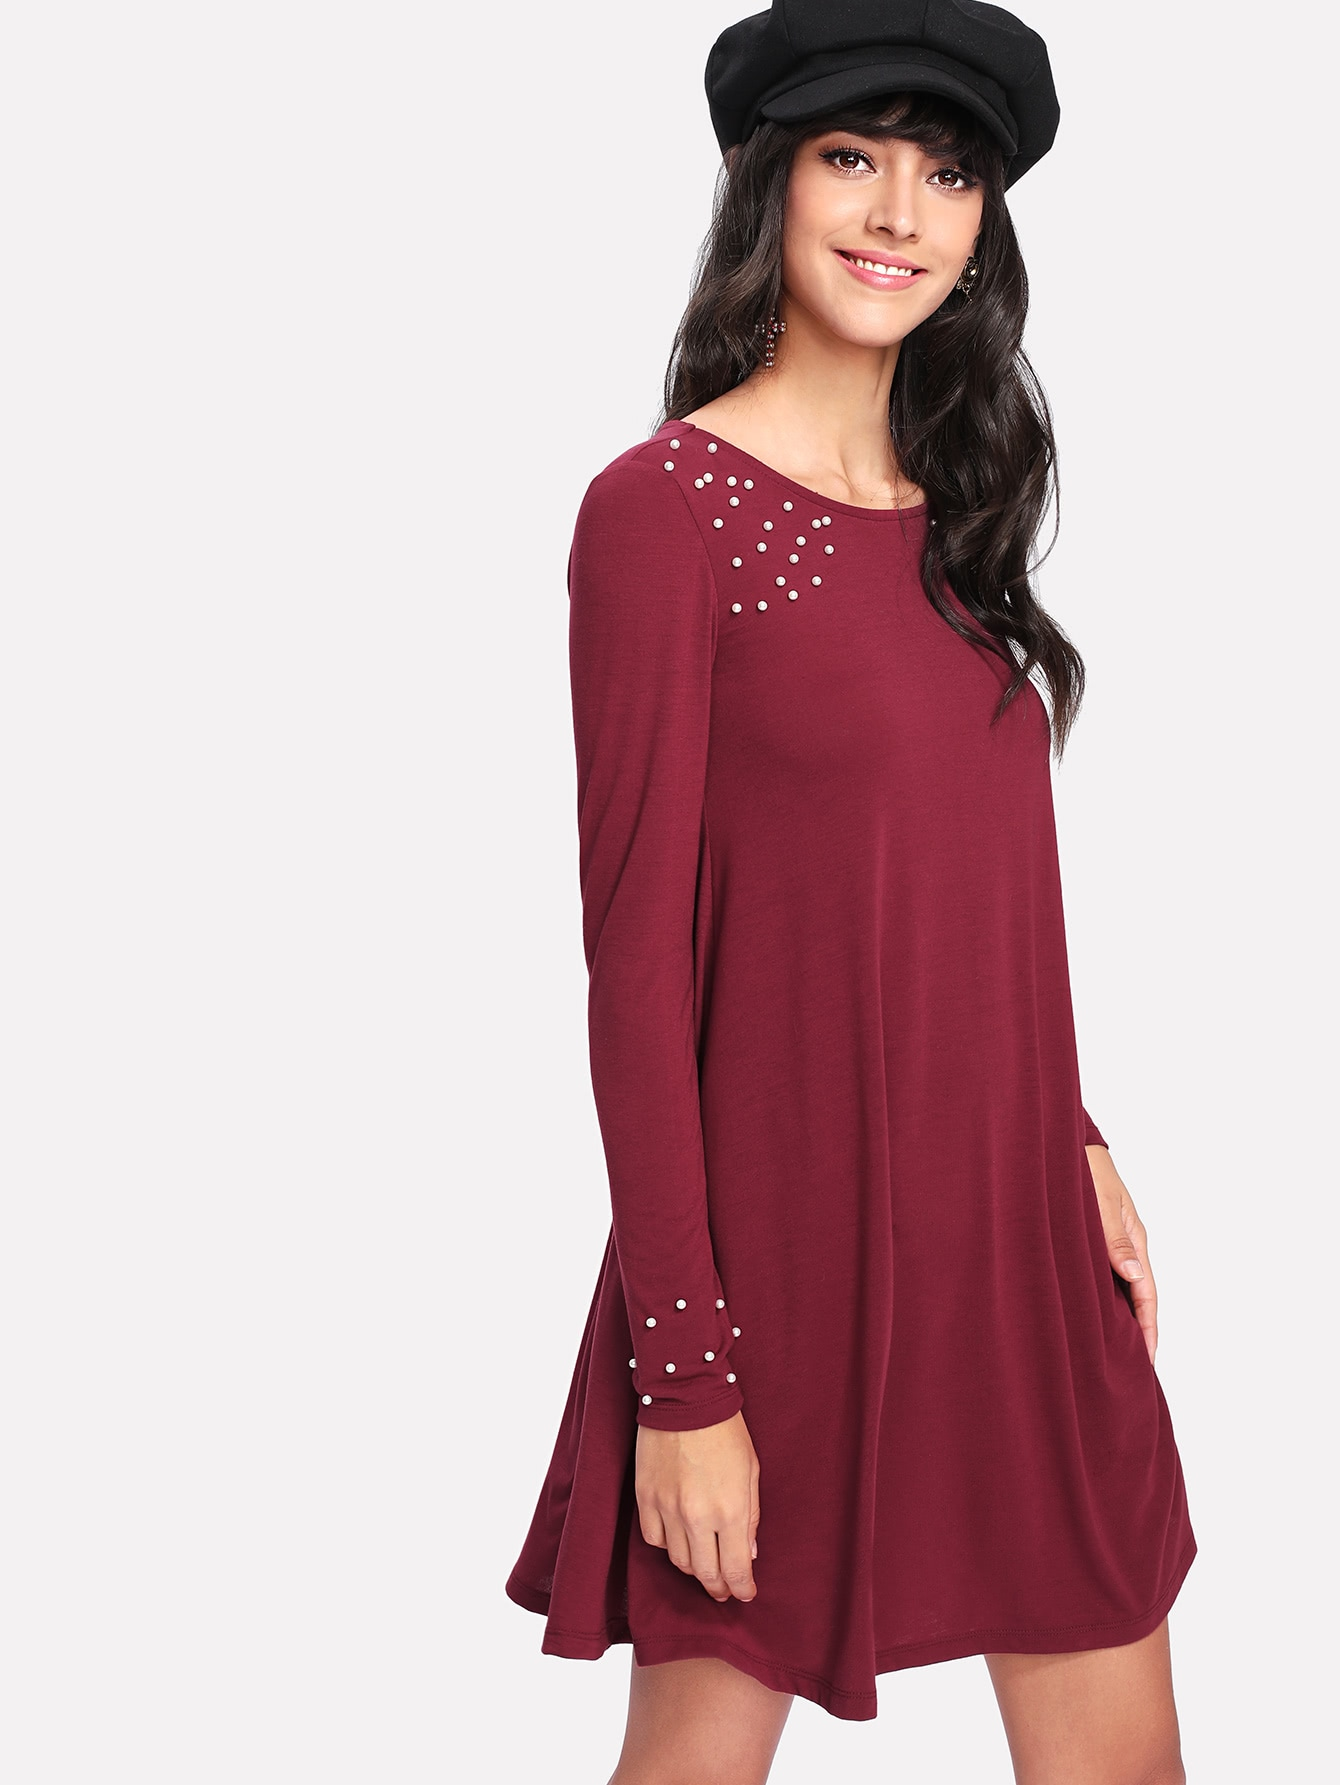 Pearl Beaded Detail Dress frill layered pearl detail sweatshirt dress